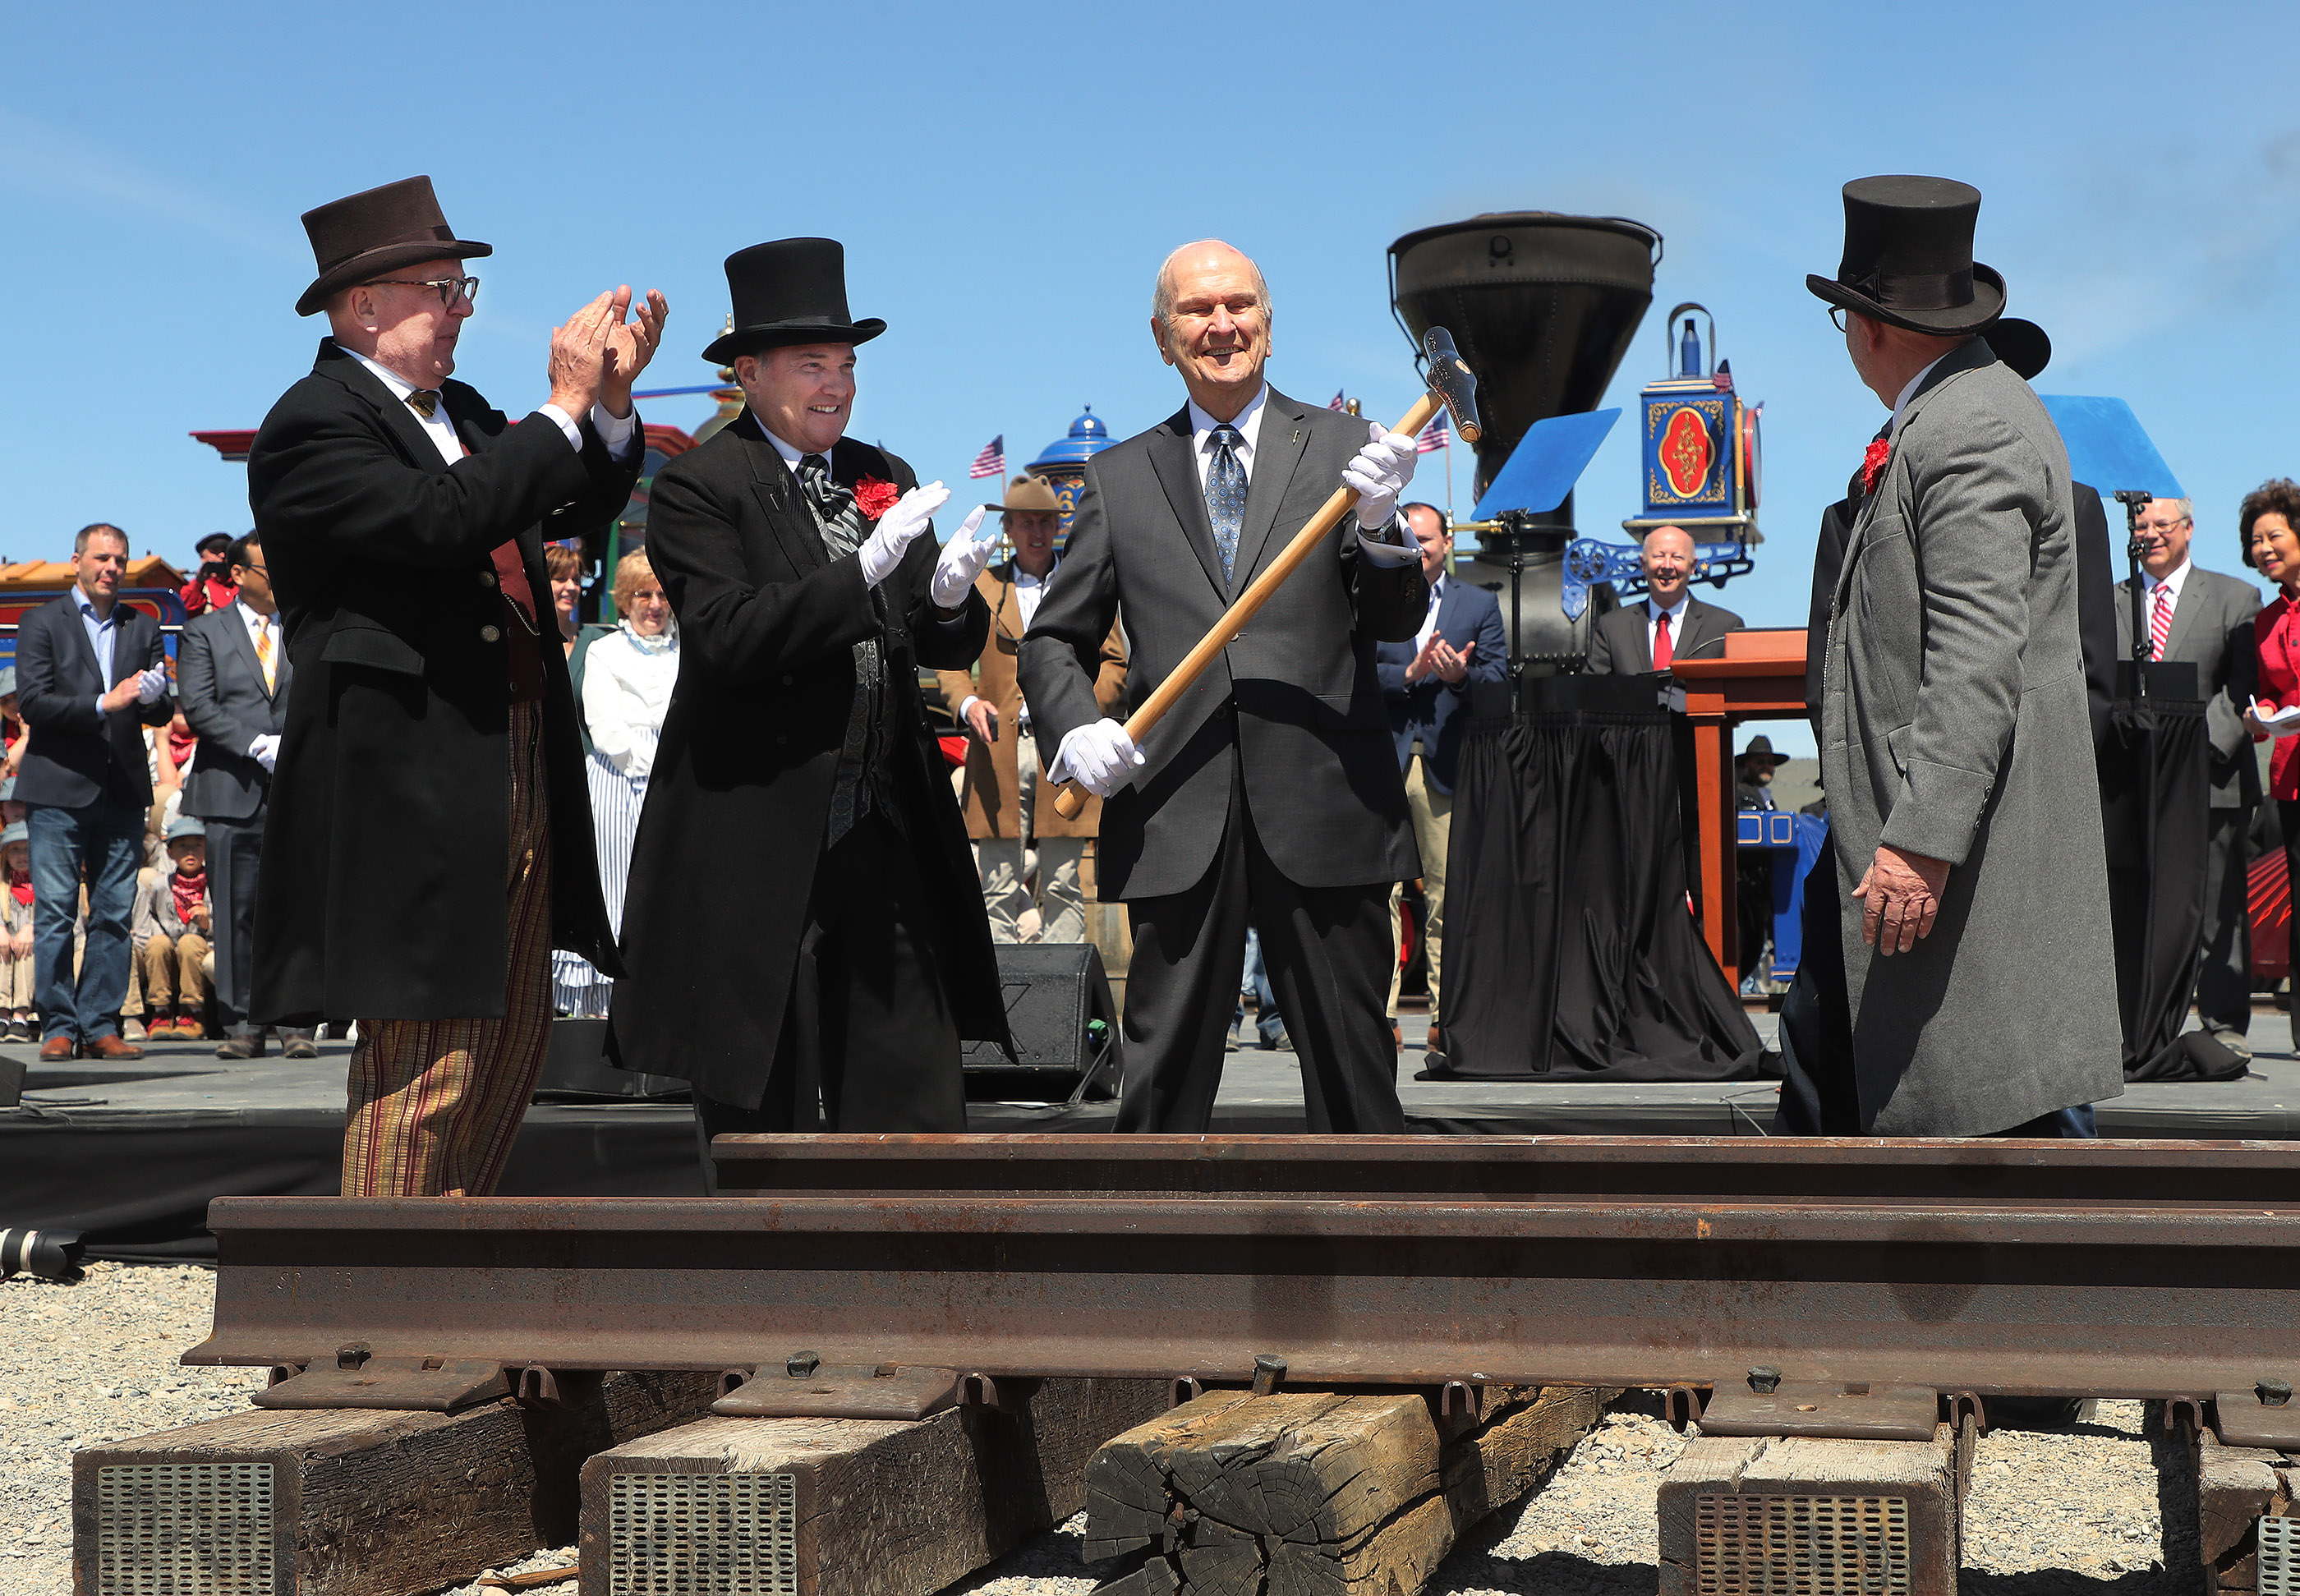 President Russell M. Nelson of The Church of Jesus Christ of Latter-day Saints, center, hoists his hammer after driving a golden spike during the 150th anniversary celebration of the transcontinental railroad at the Golden Spike National Historical Park at Promontory Summit, Utah, on Friday, May 10, 2019.